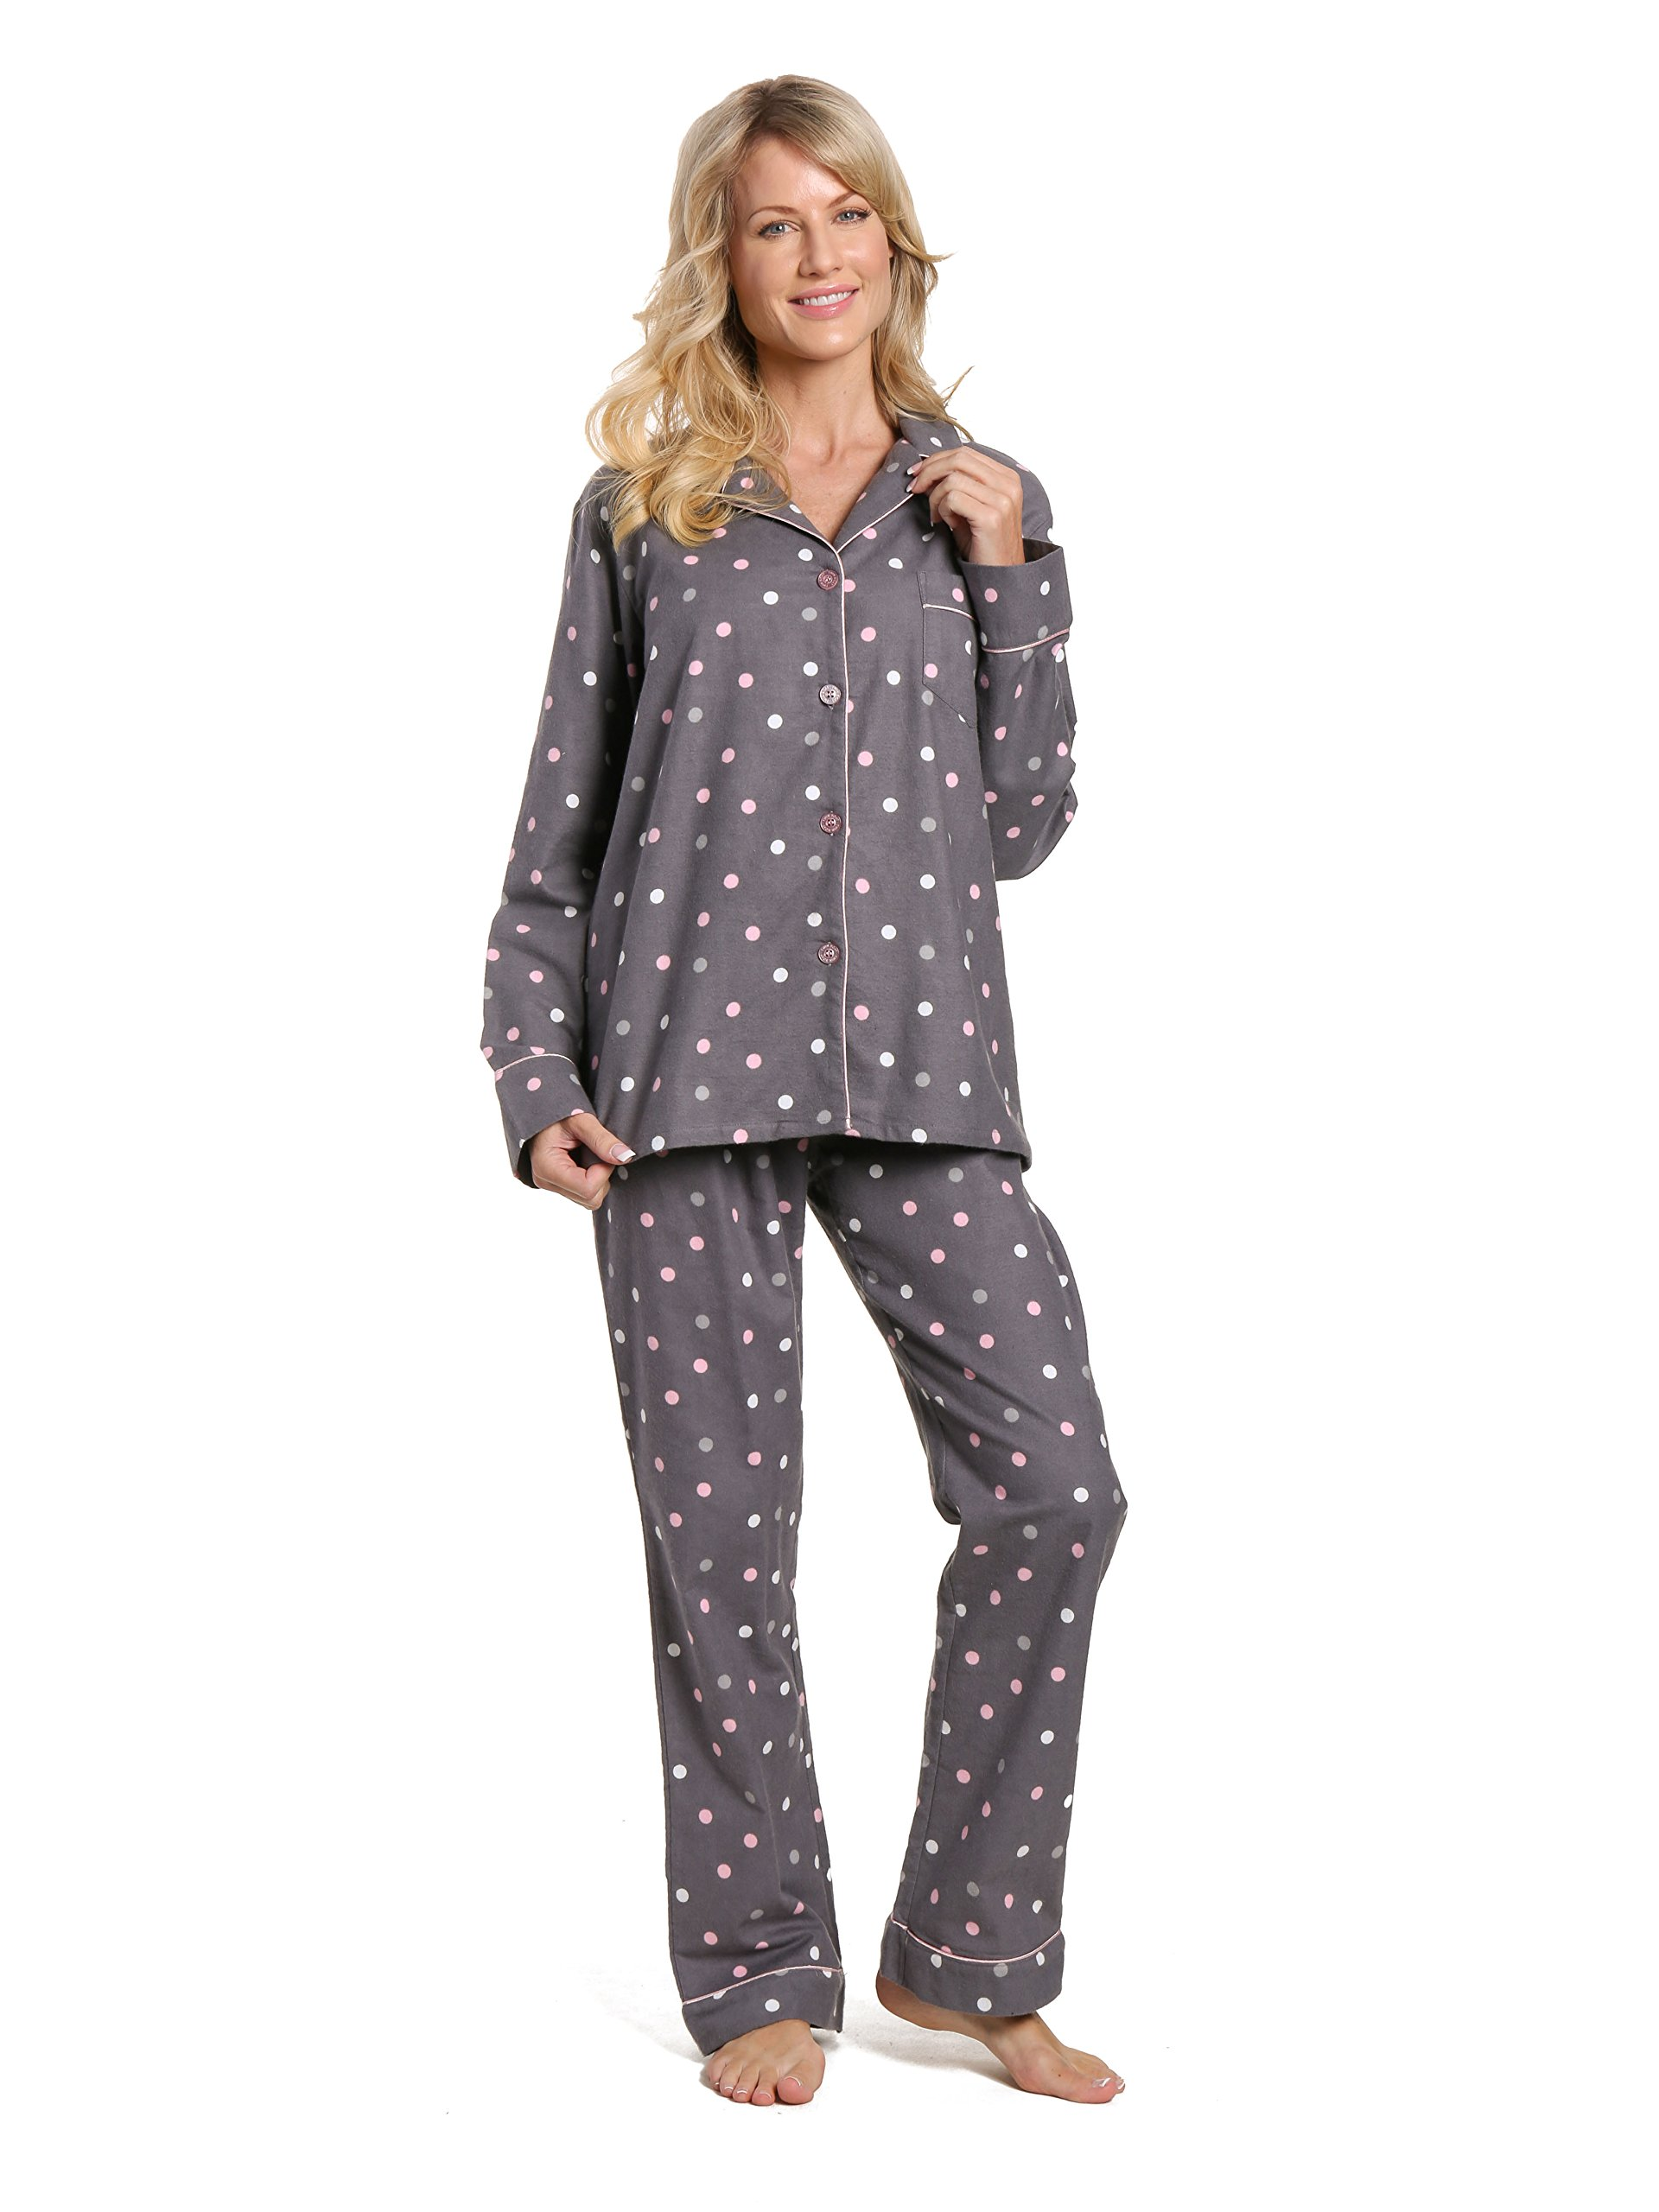 oriental the pin buy next pyjamas online printed comfortable button shop most pajamas from comforter uk through